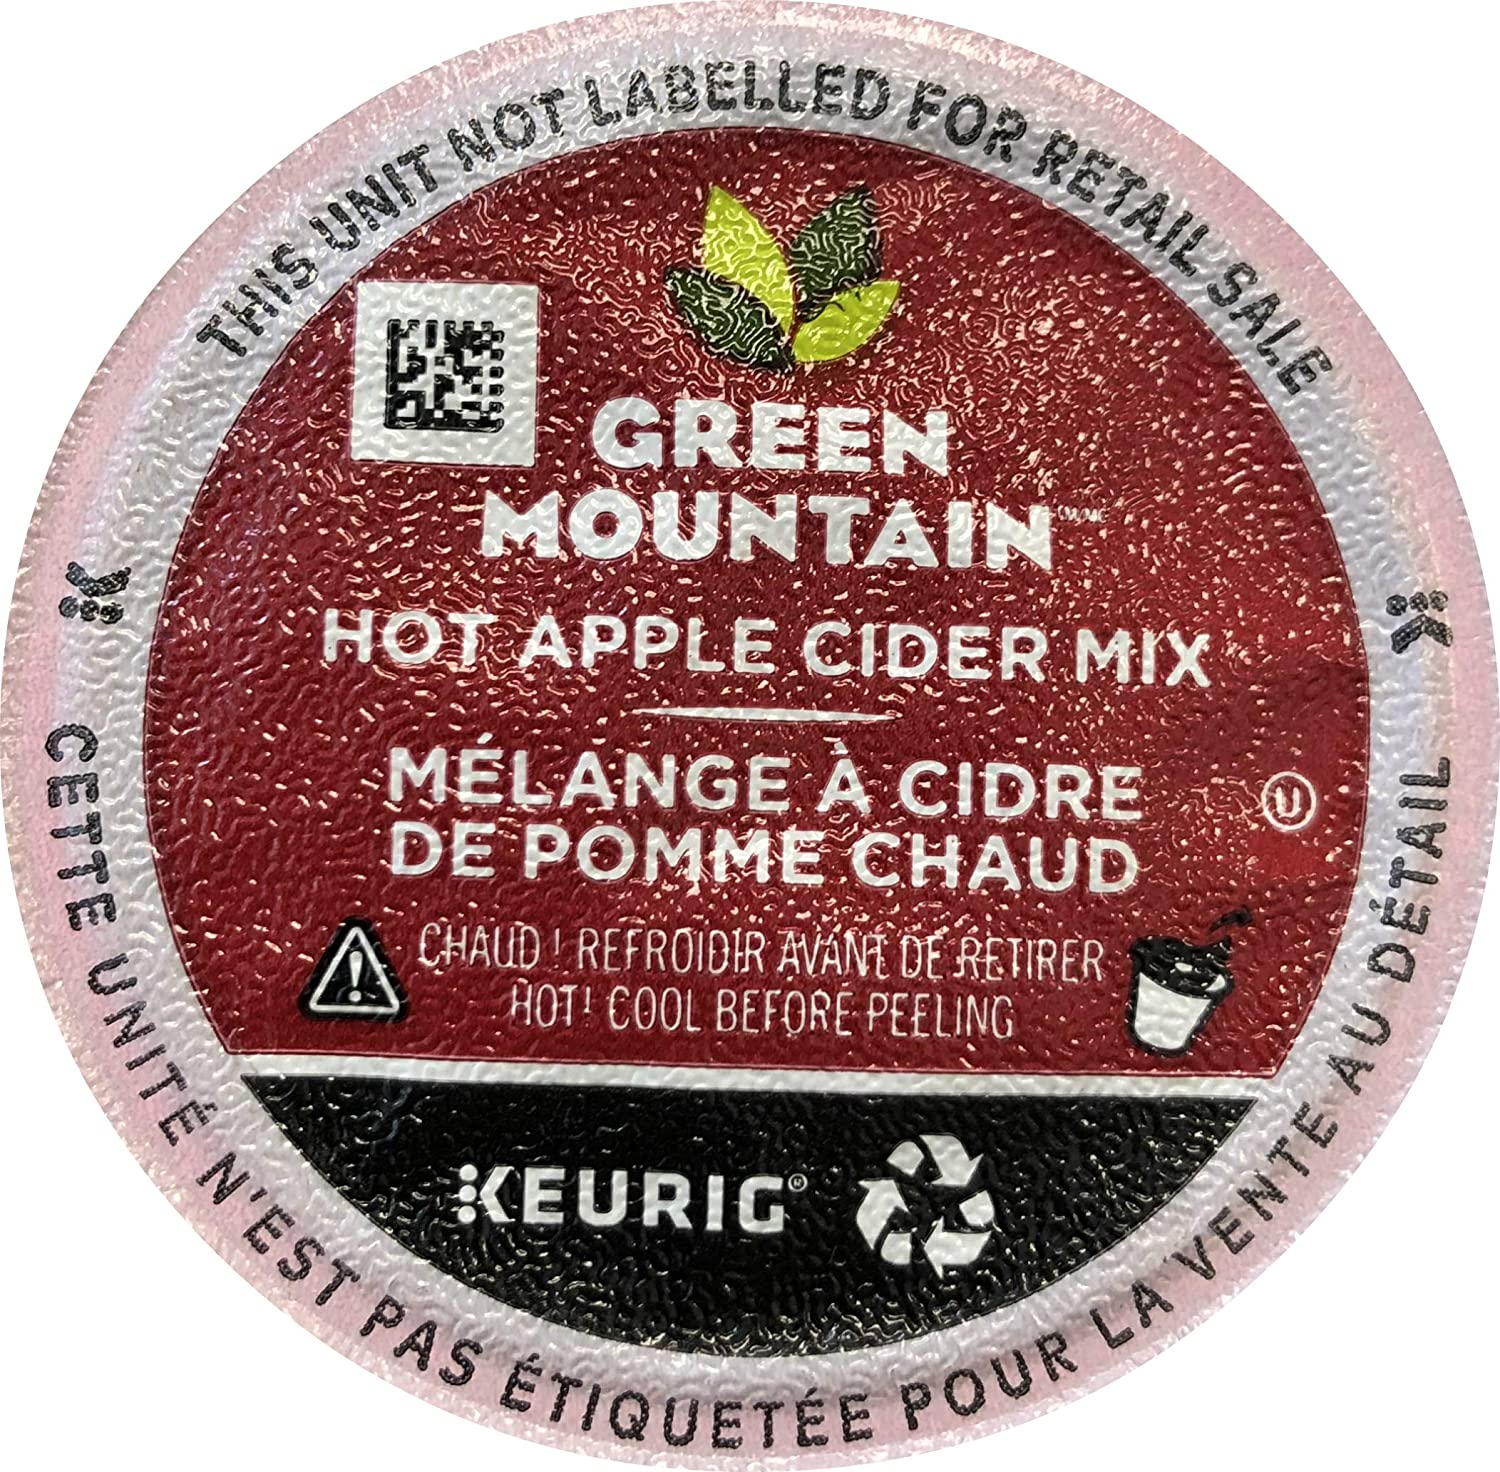 Green Mountain Naturals Hot Apple Cider, K-Cup Portion Pack for Keurig K-Cup Brewers, 24 count